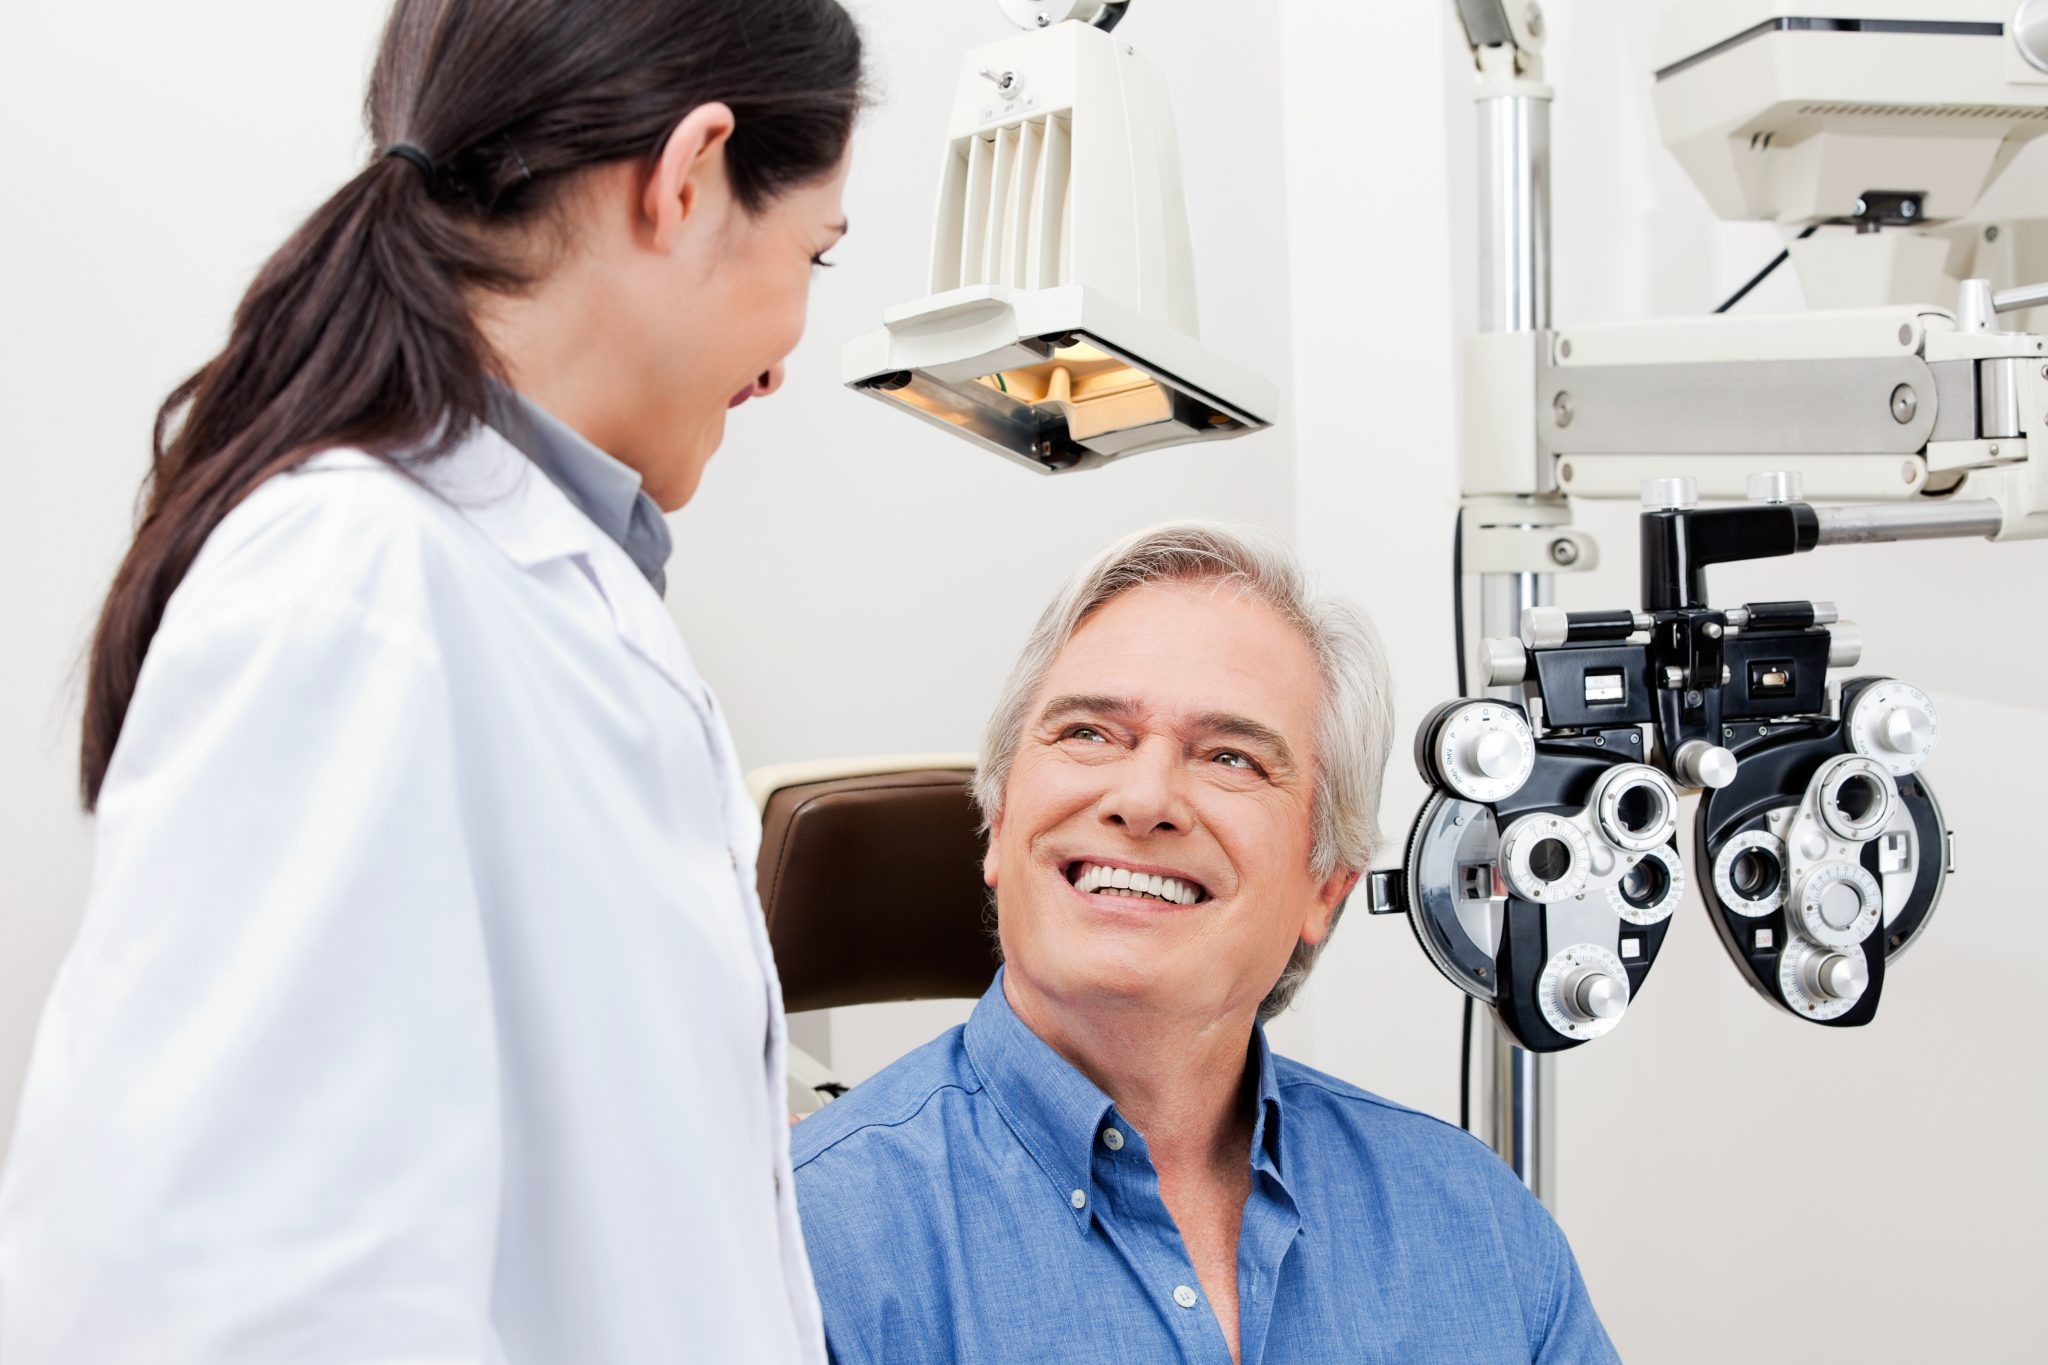 stem-cells-cure-cataracts-eye-exam-optometrist-and-smiling-elderly-man